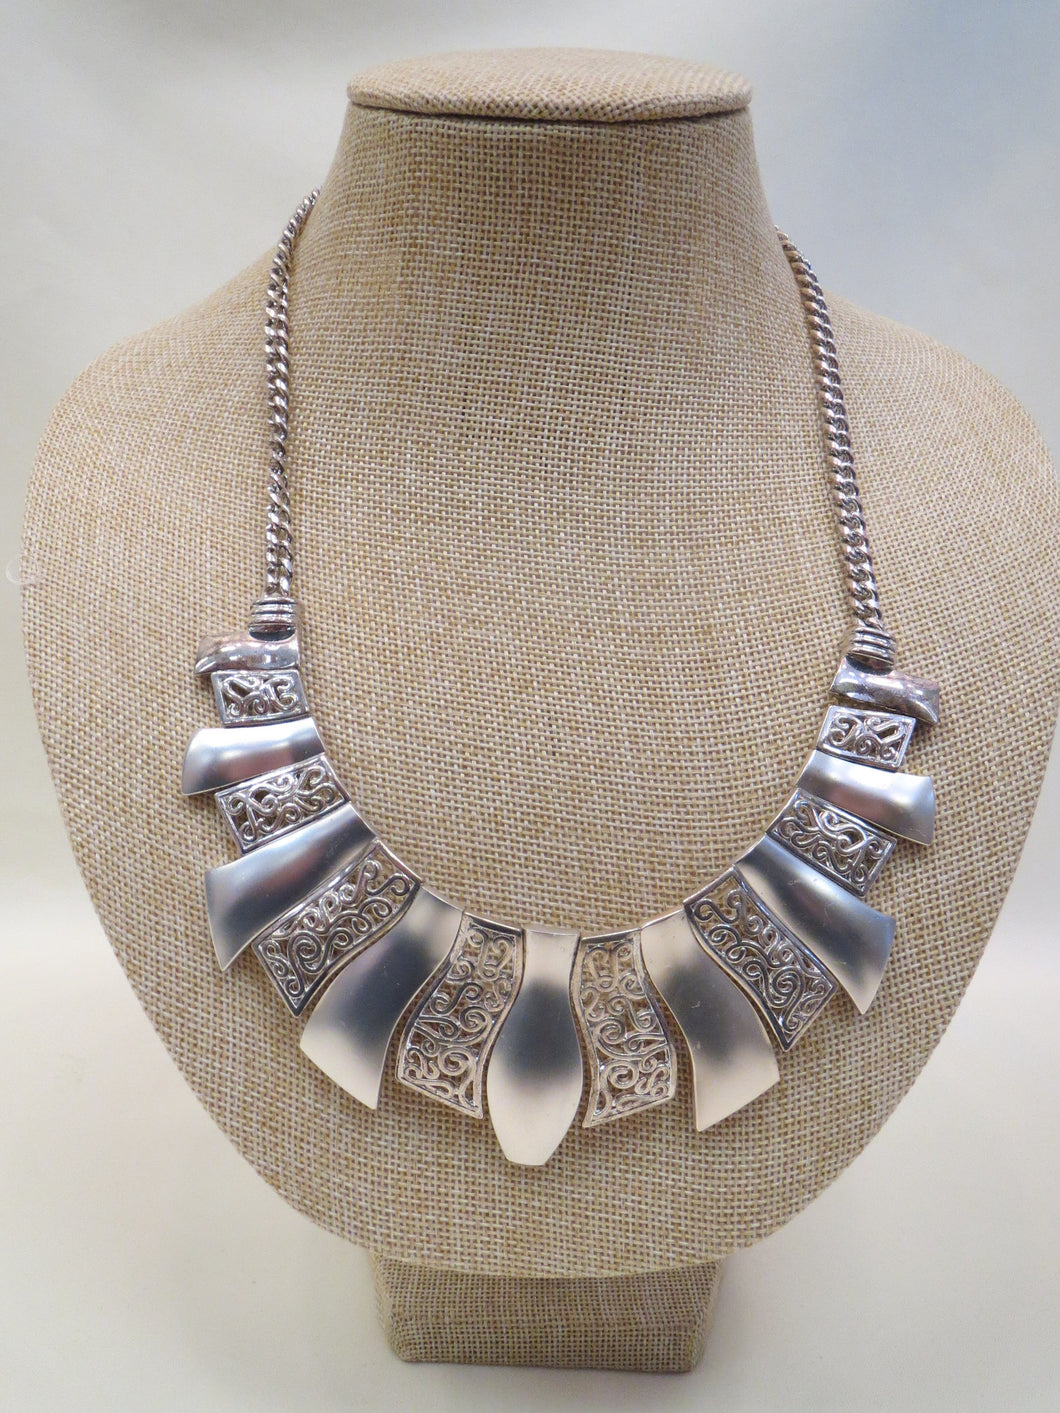 ADO Silver Statement Necklace | All Dec'd Out